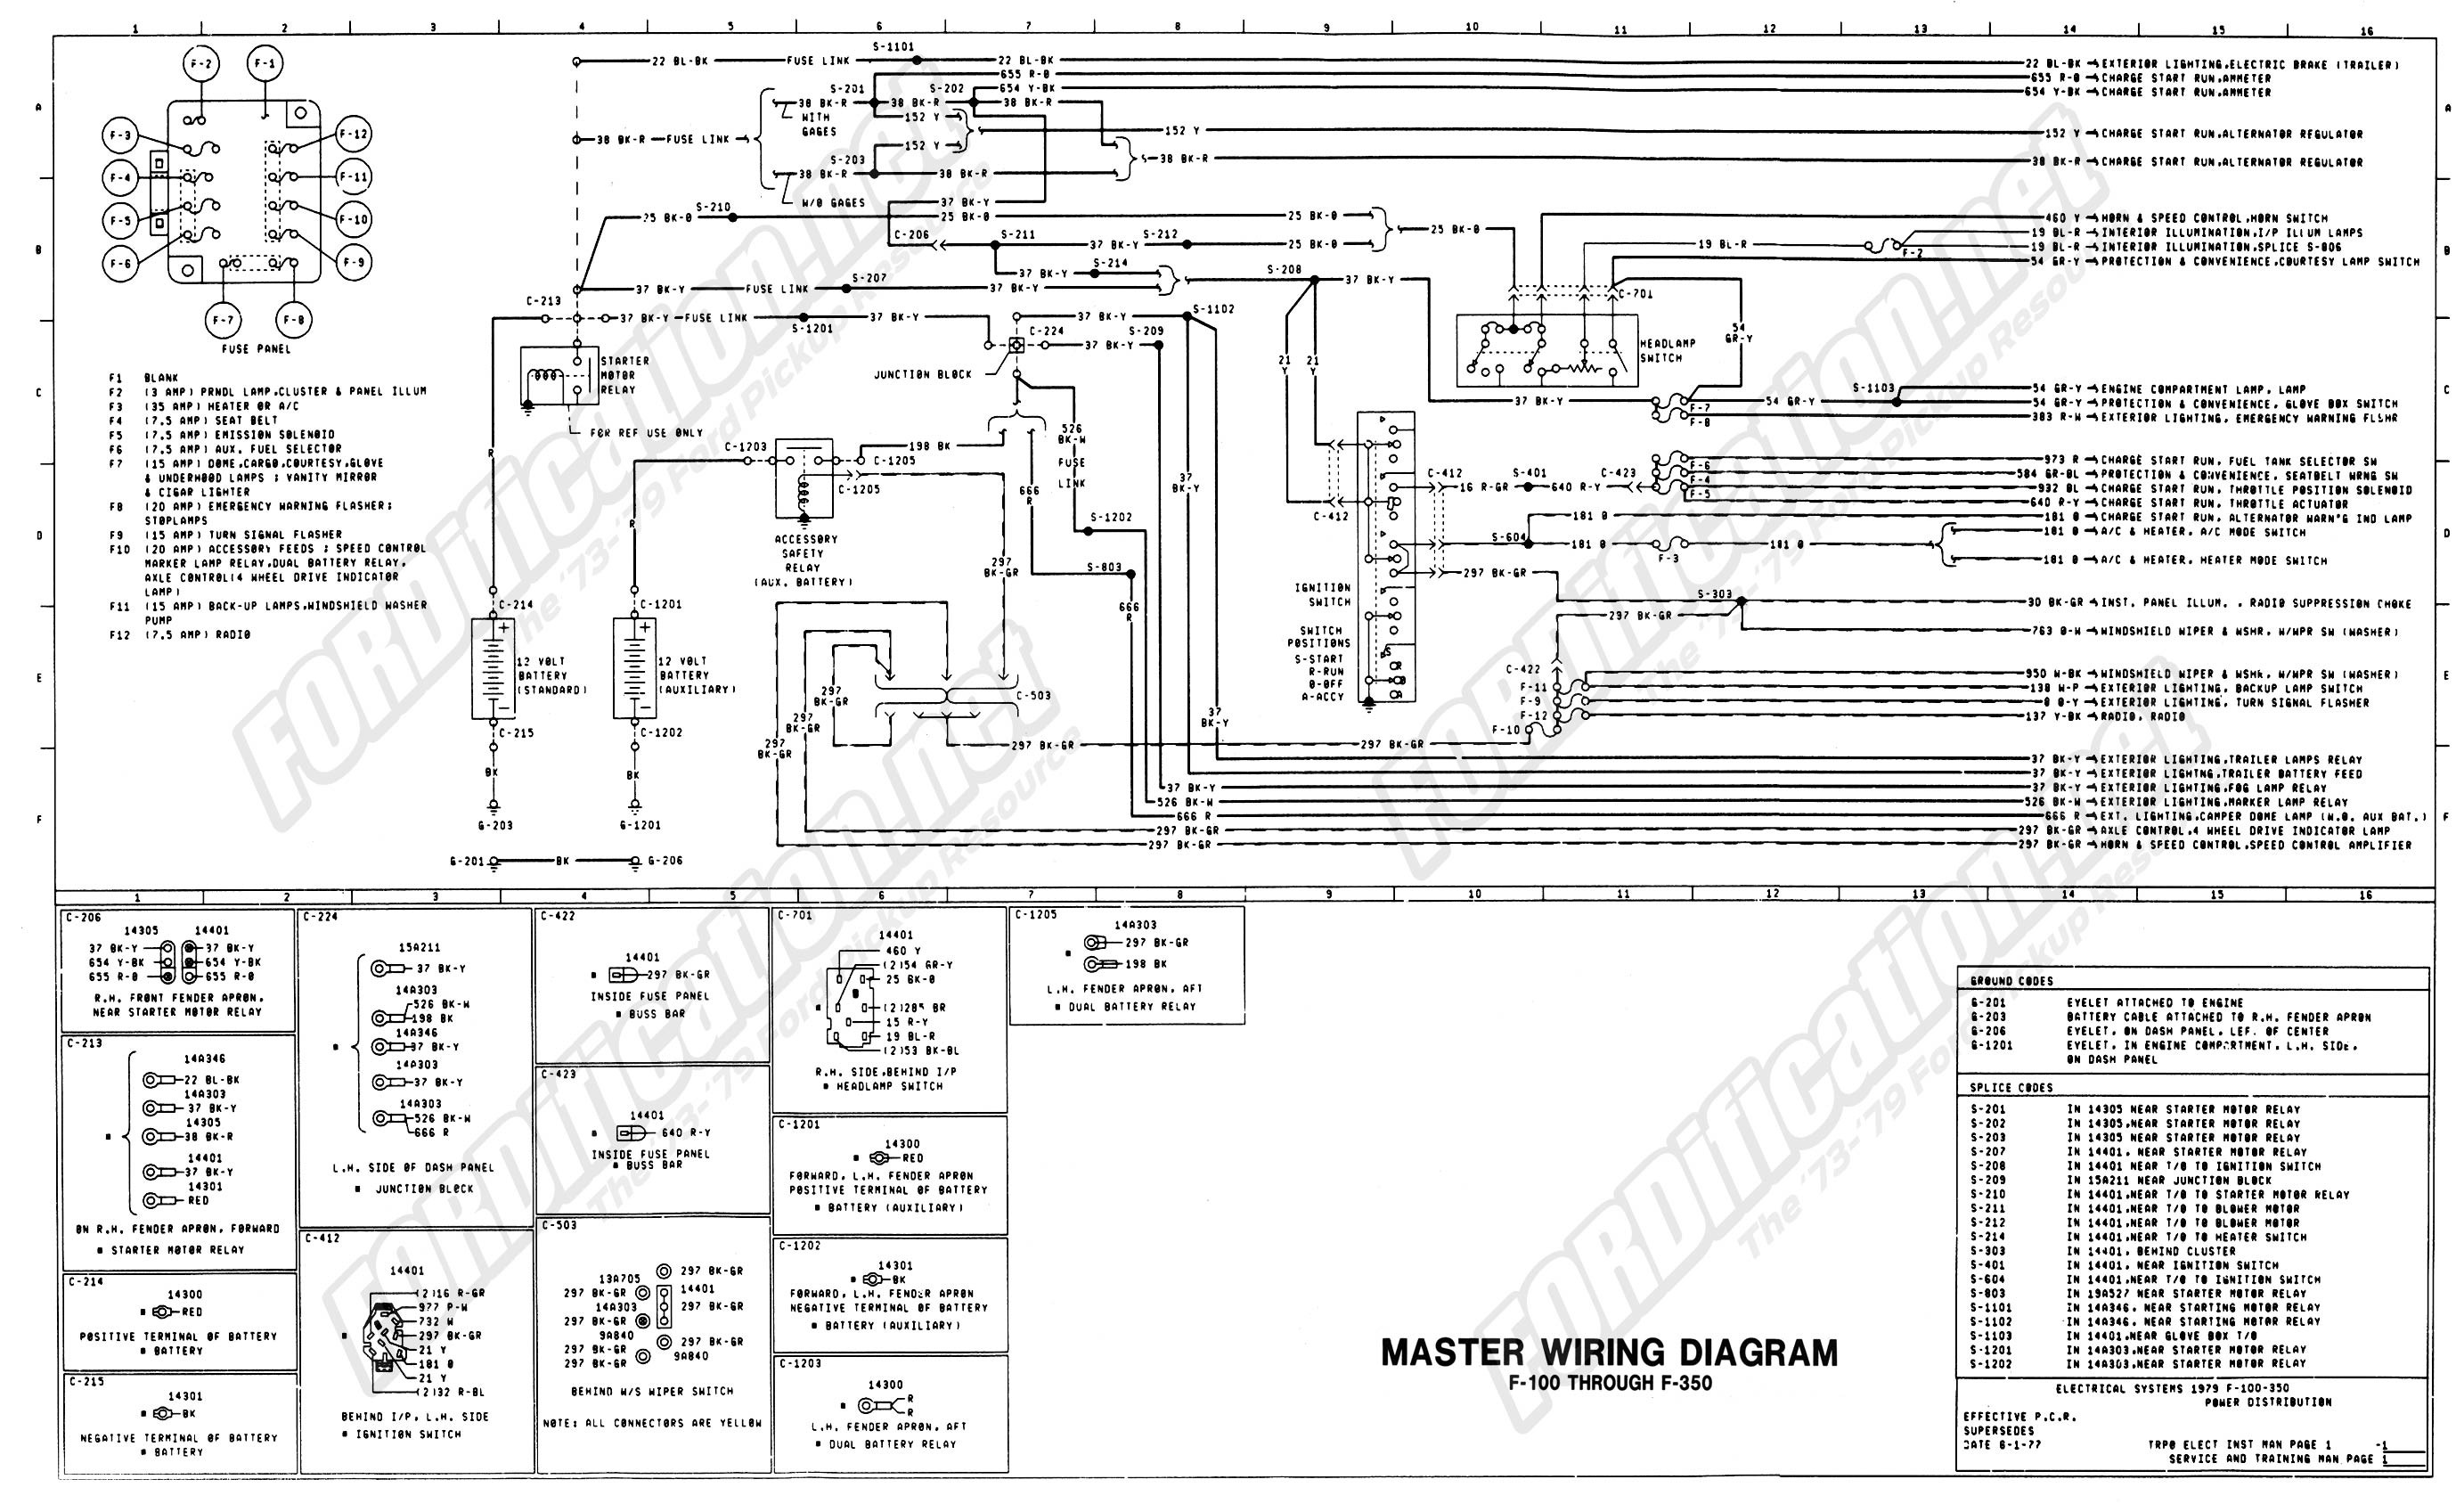 2001 f150 wiring diagram f150 wiring harness further 1970 ford rh detoxicrecenze com 1973 Ford Truck Wiring Diagram Ford Electrical Wiring Diagrams